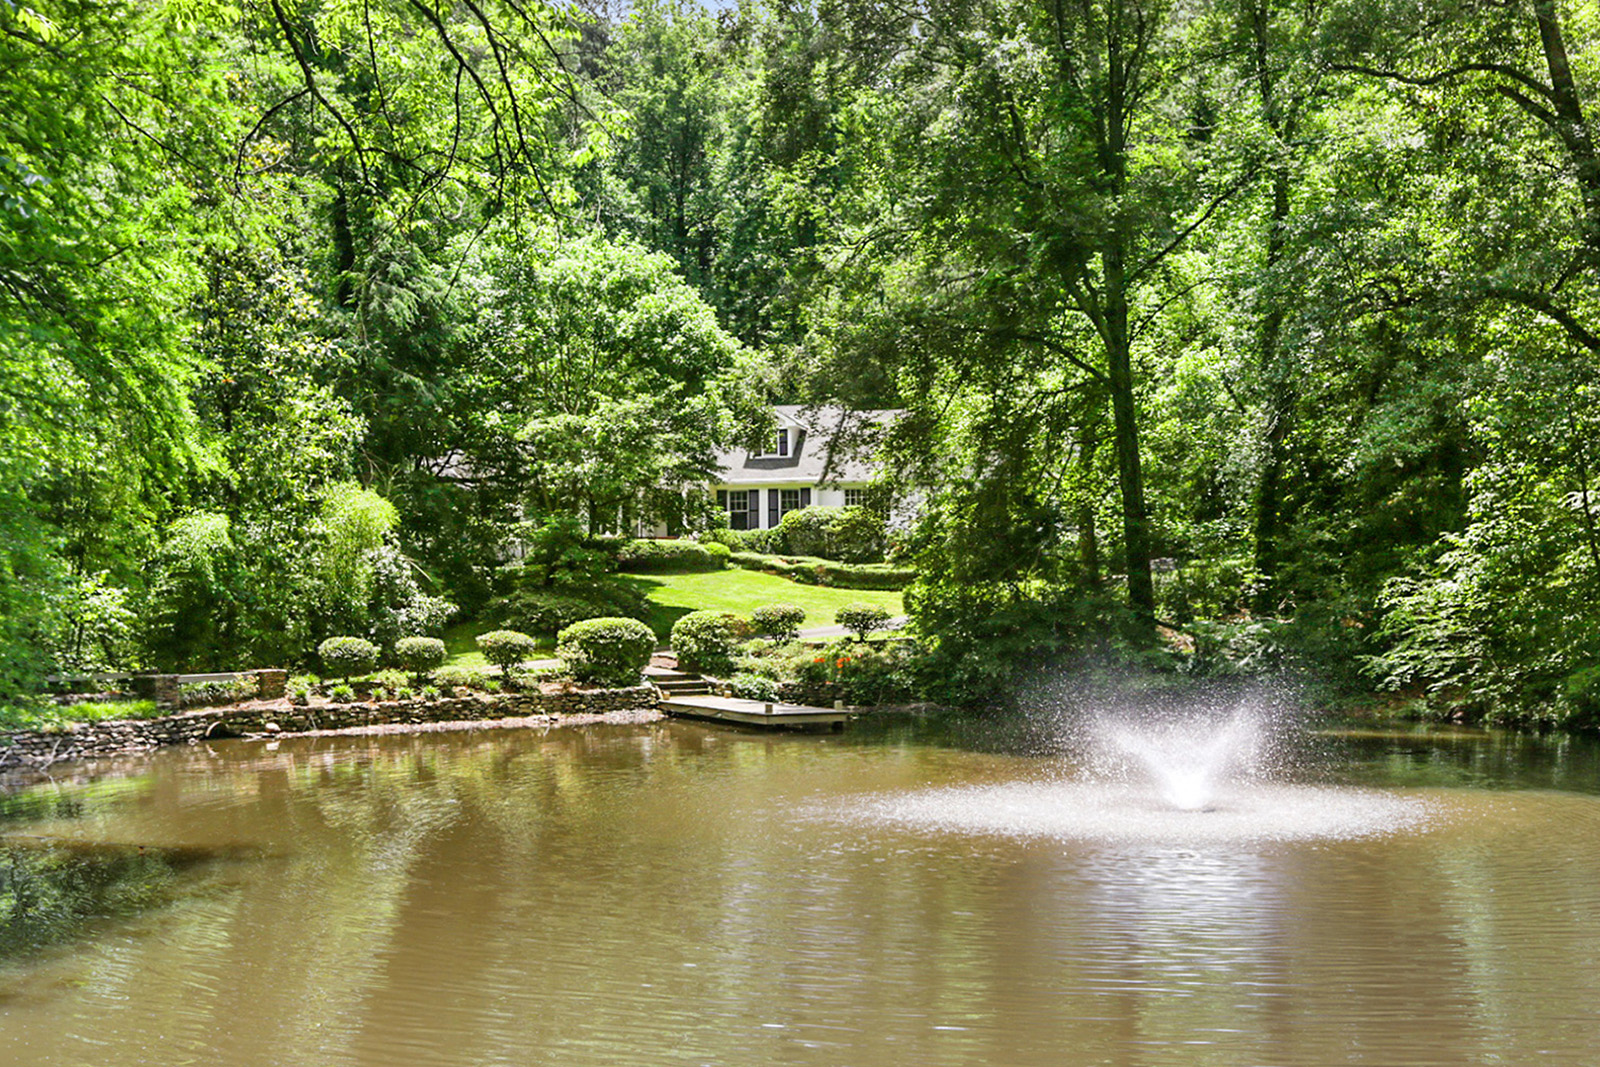 Maison unifamiliale pour l Vente à Private Buckhead Retreat 4745 Harris Trail Buckhead, Atlanta, Georgia 30327 États-Unis